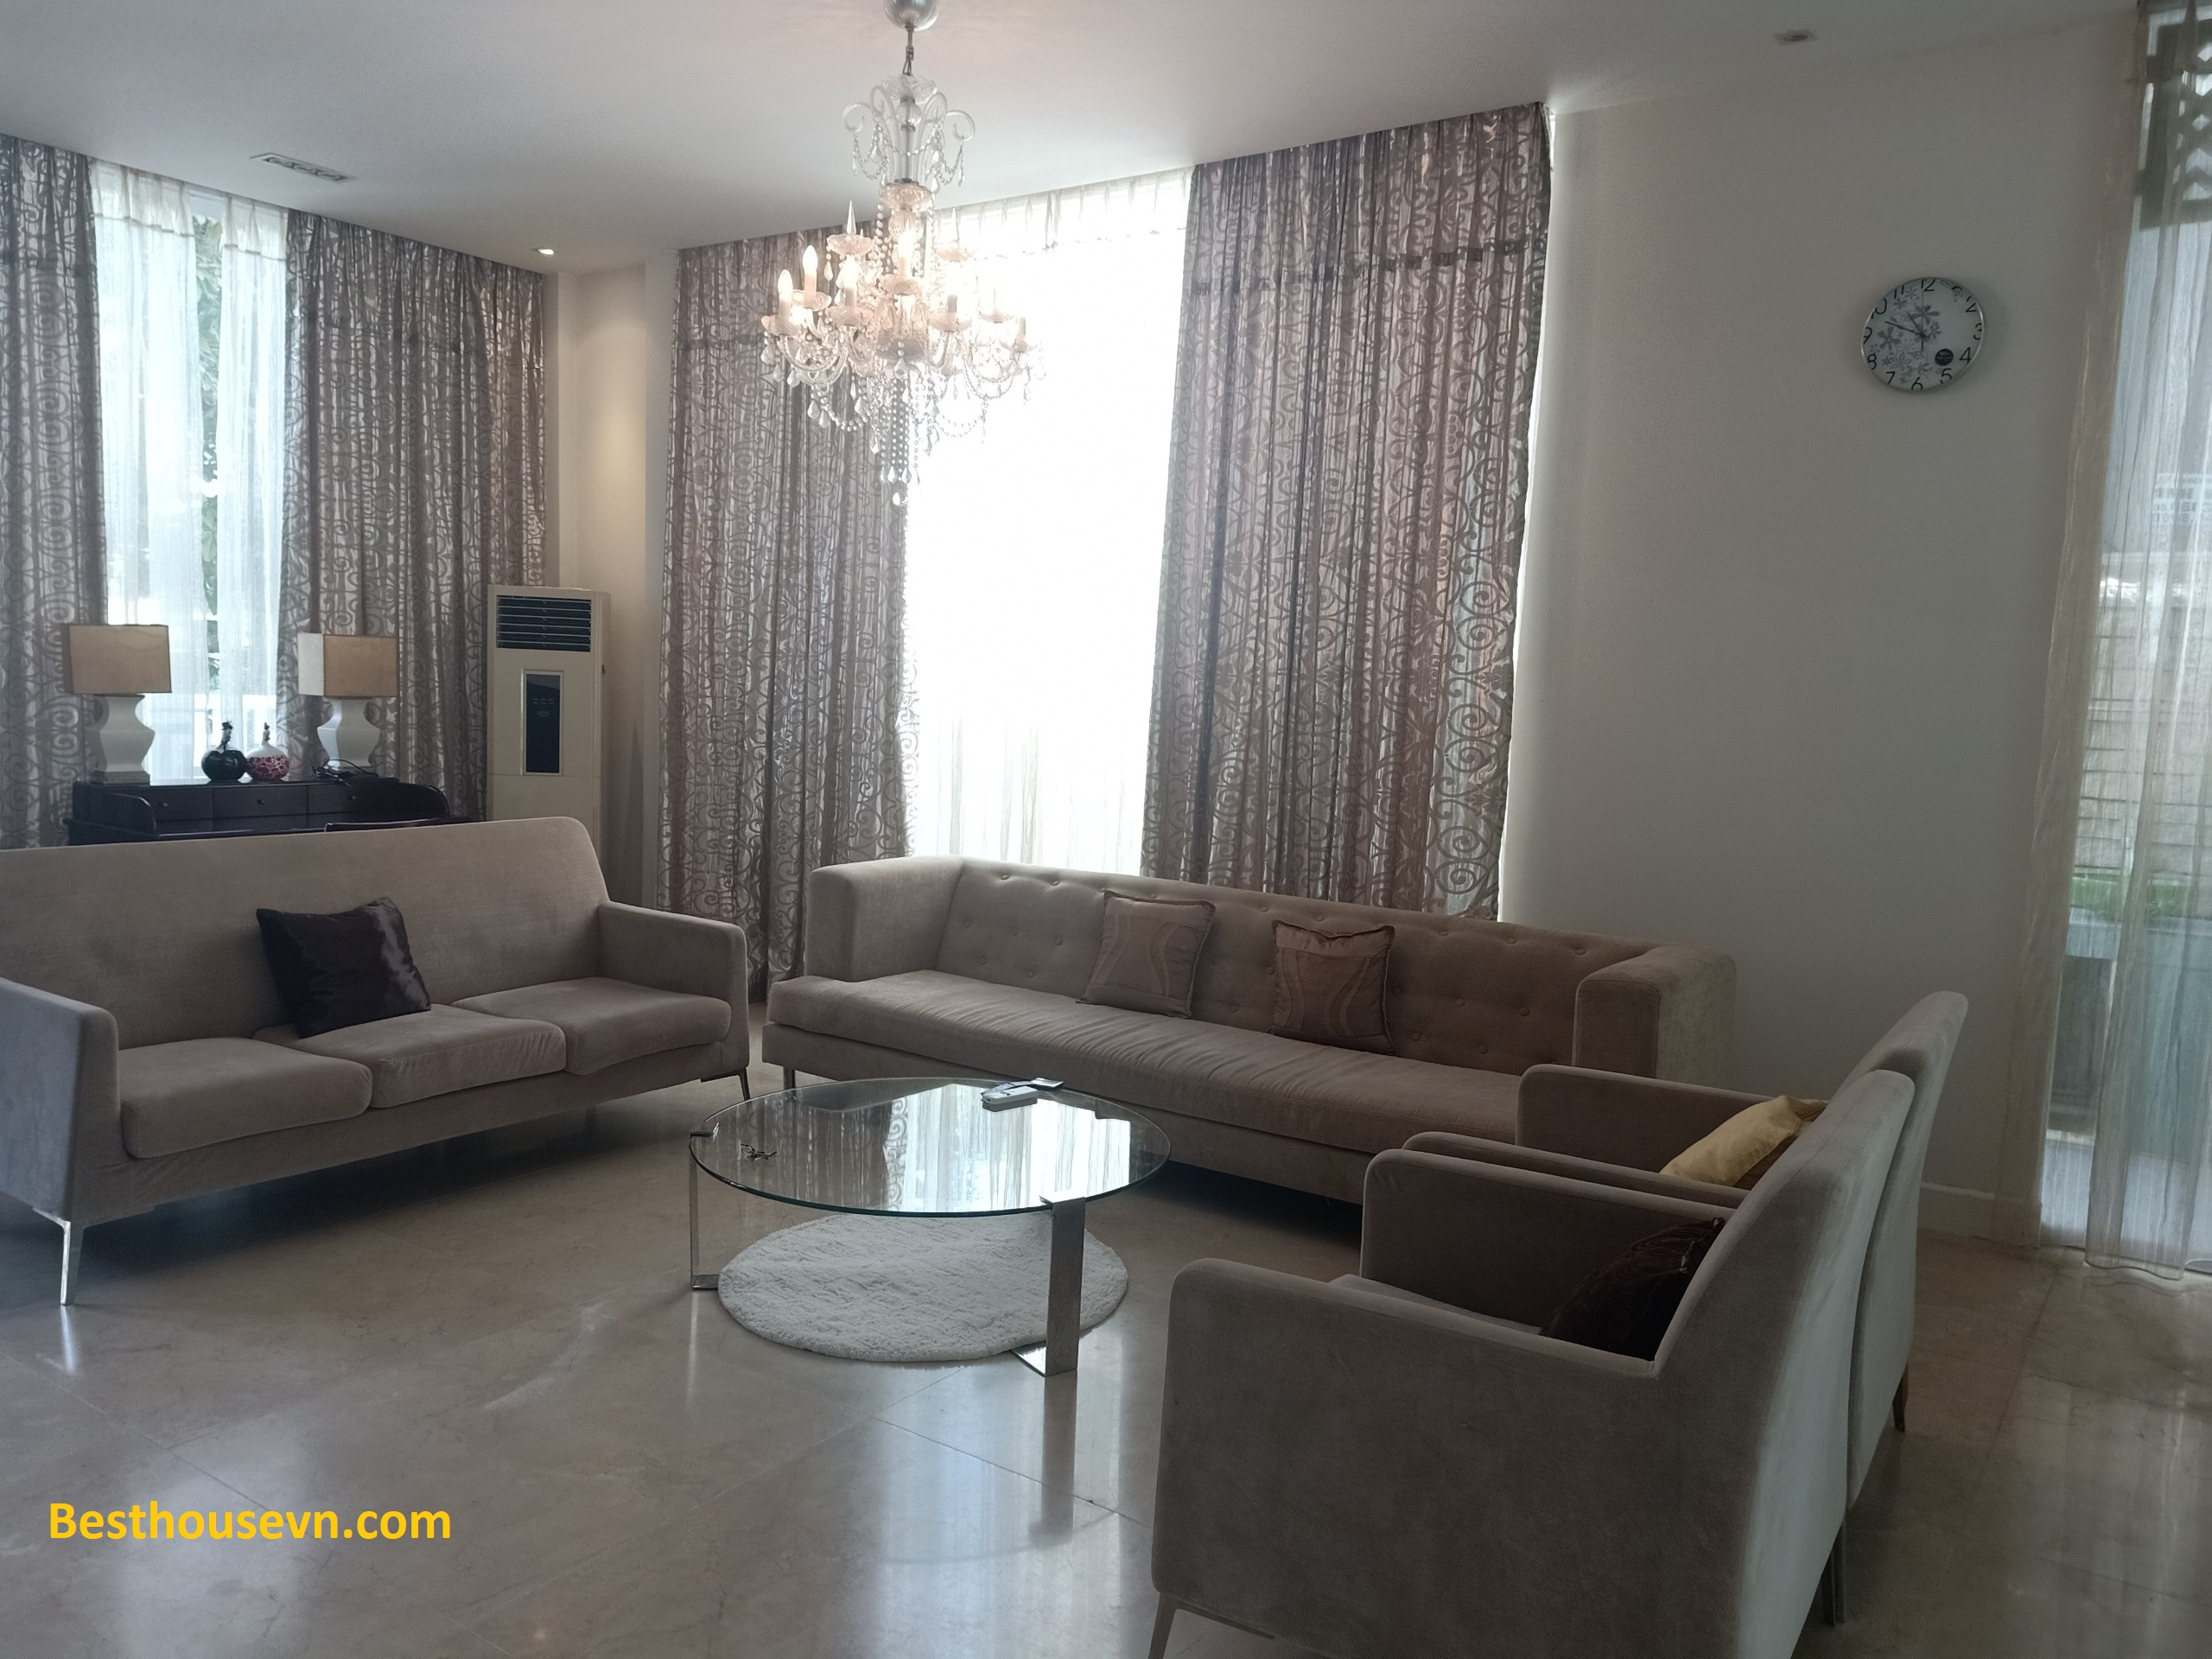 swimming-pool-Villa-for-rent-in-phu-my-hung-4